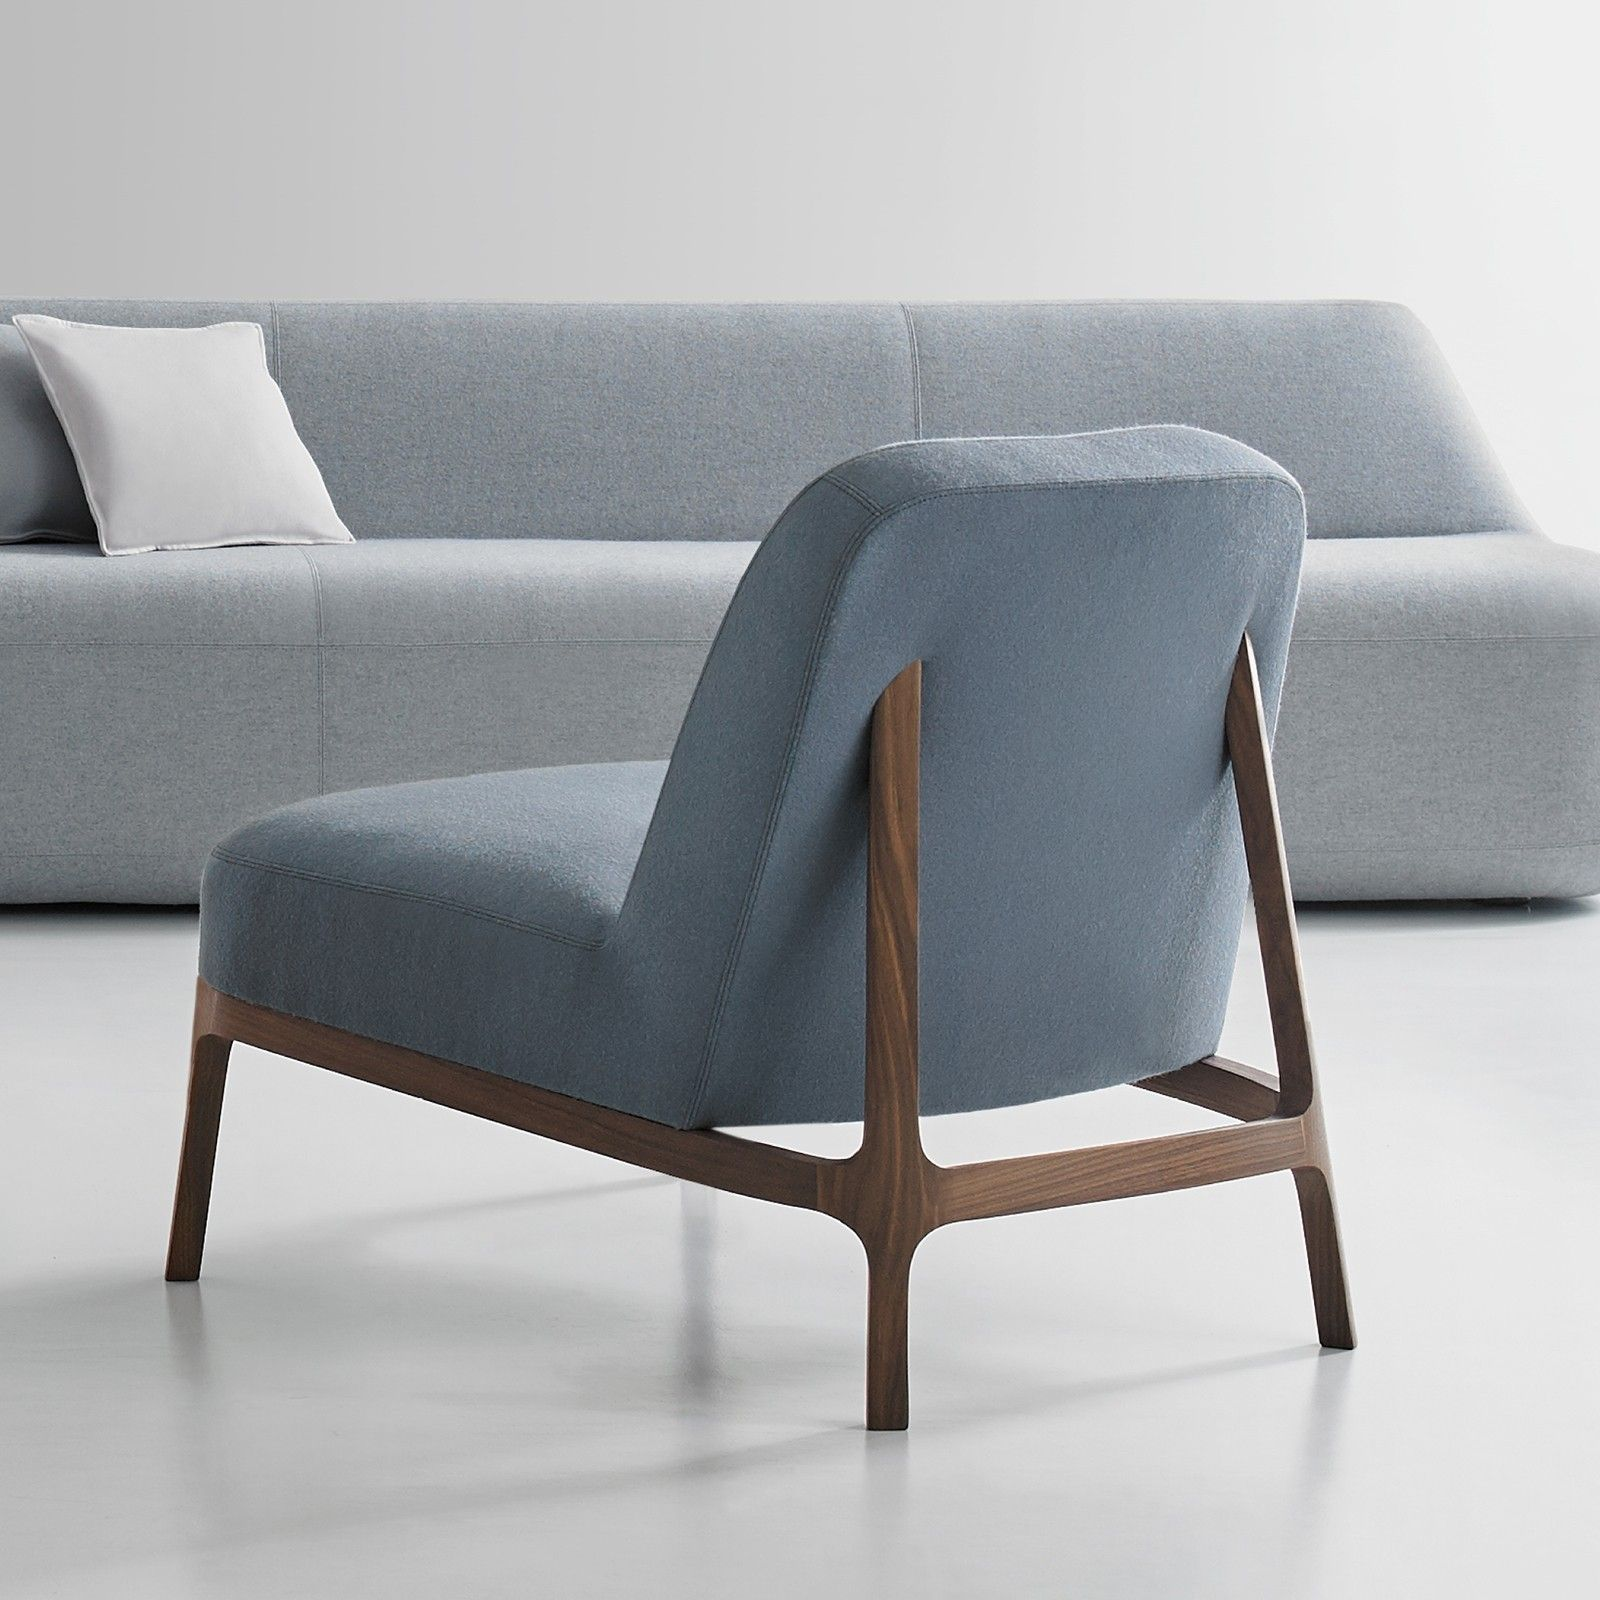 Seating Ke Zu Furniture Residential And Contract Furniture Sydney Australia With Images Furniture Design Chair Sofa Design Contemporary Living Room Furniture